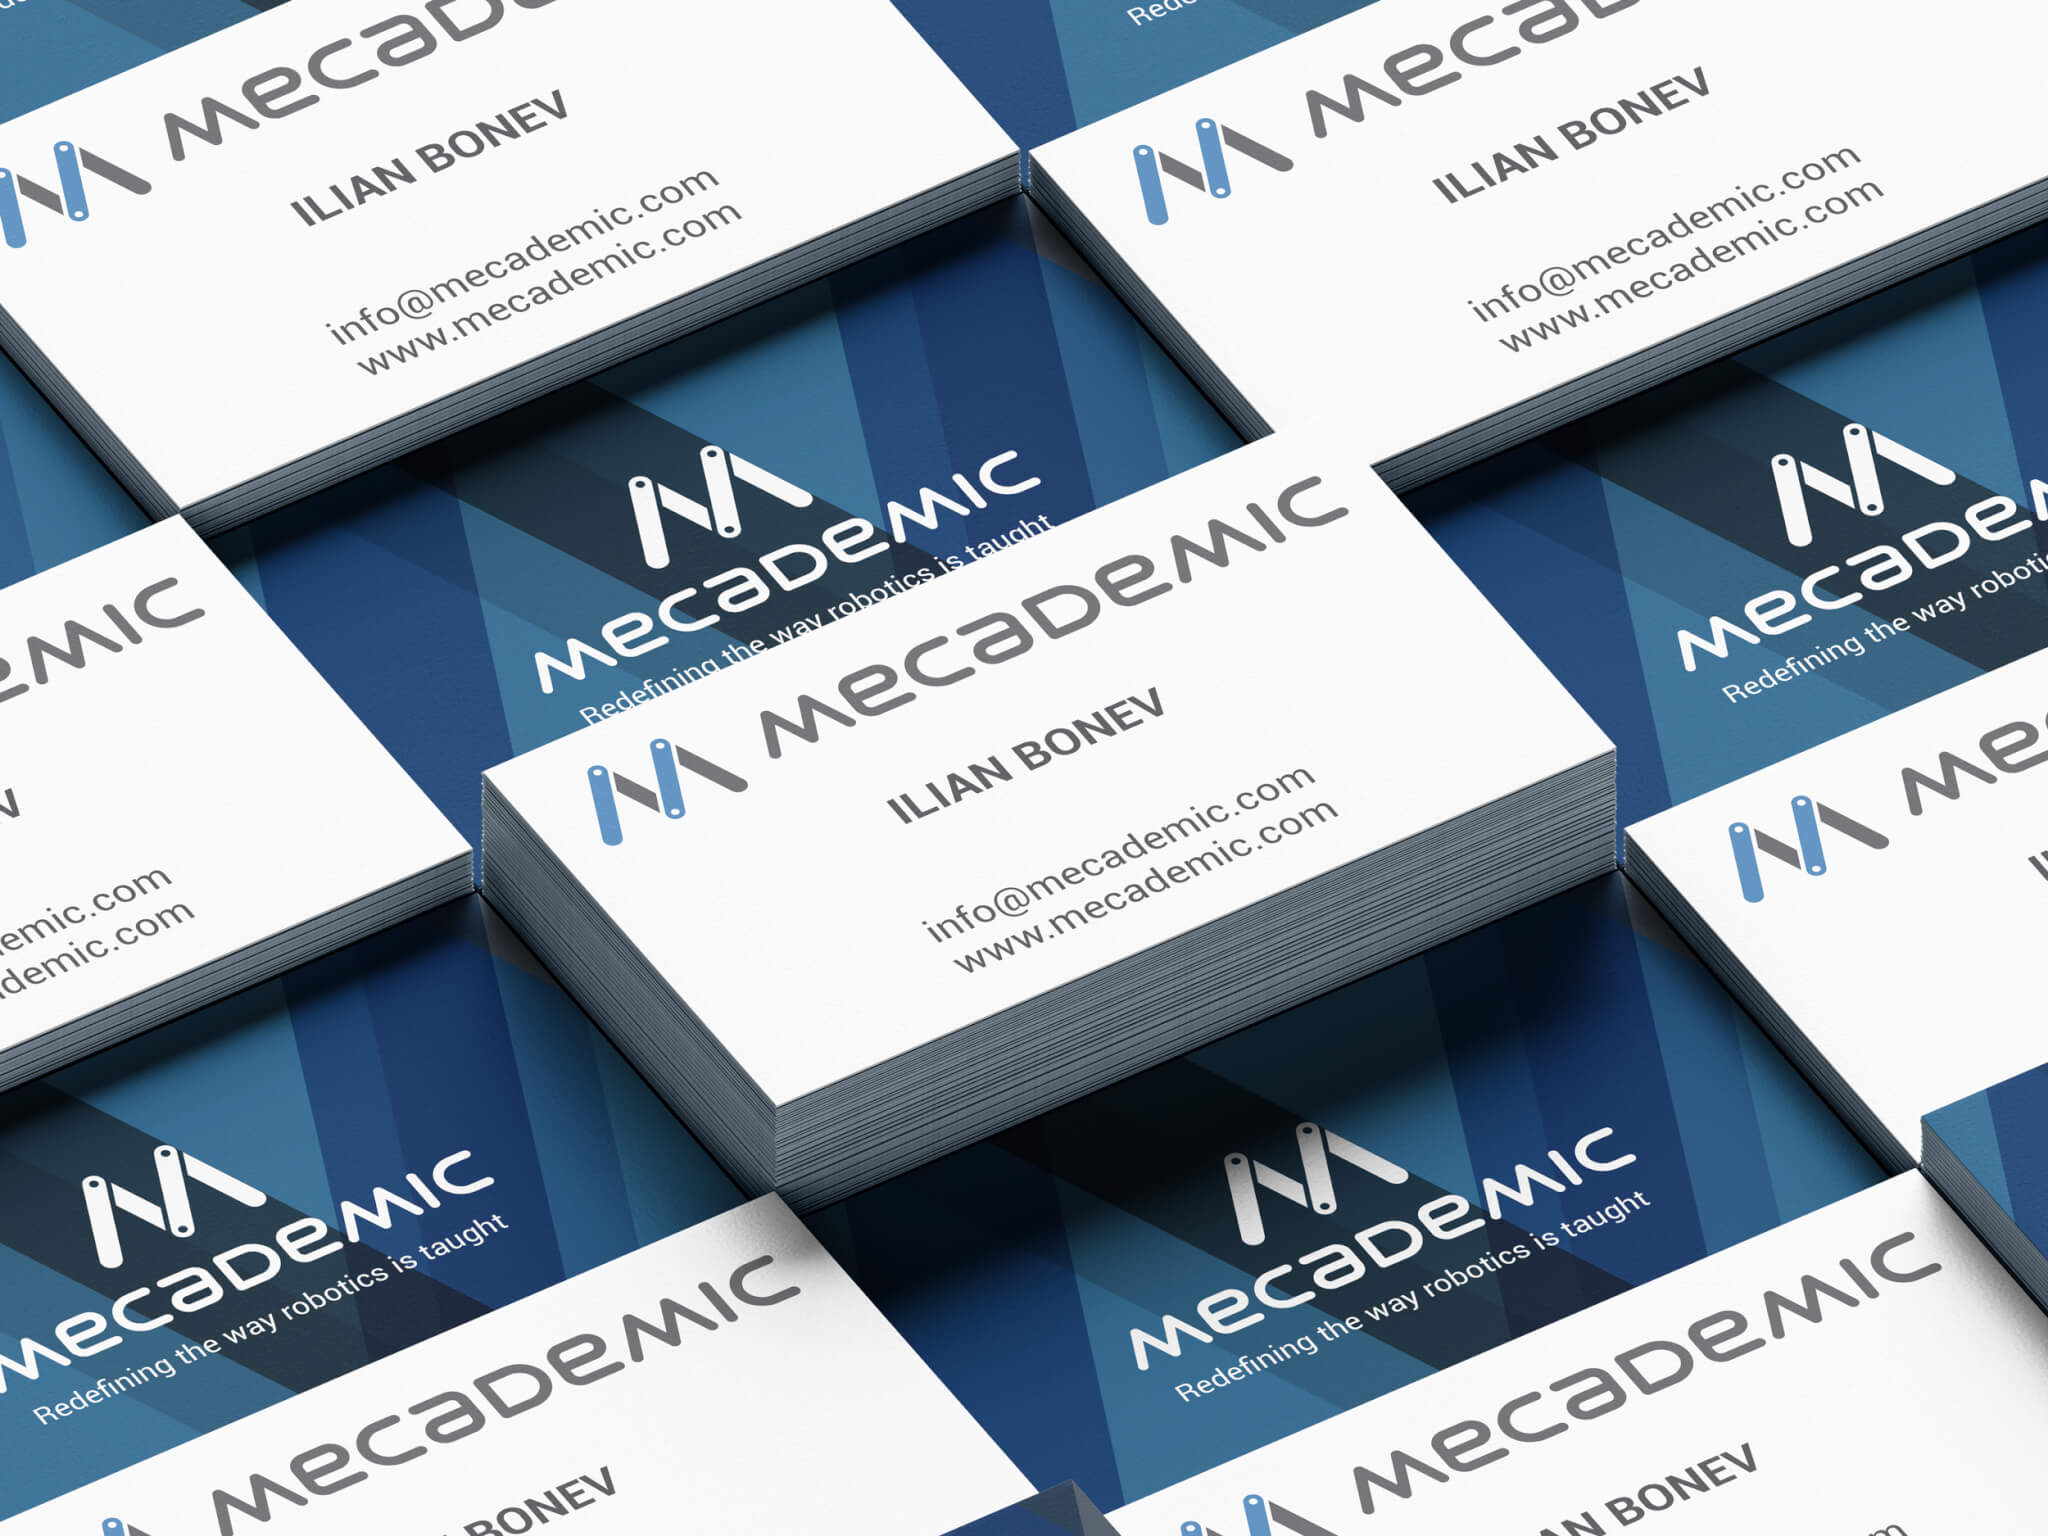 Mecademics-Biz-Cards